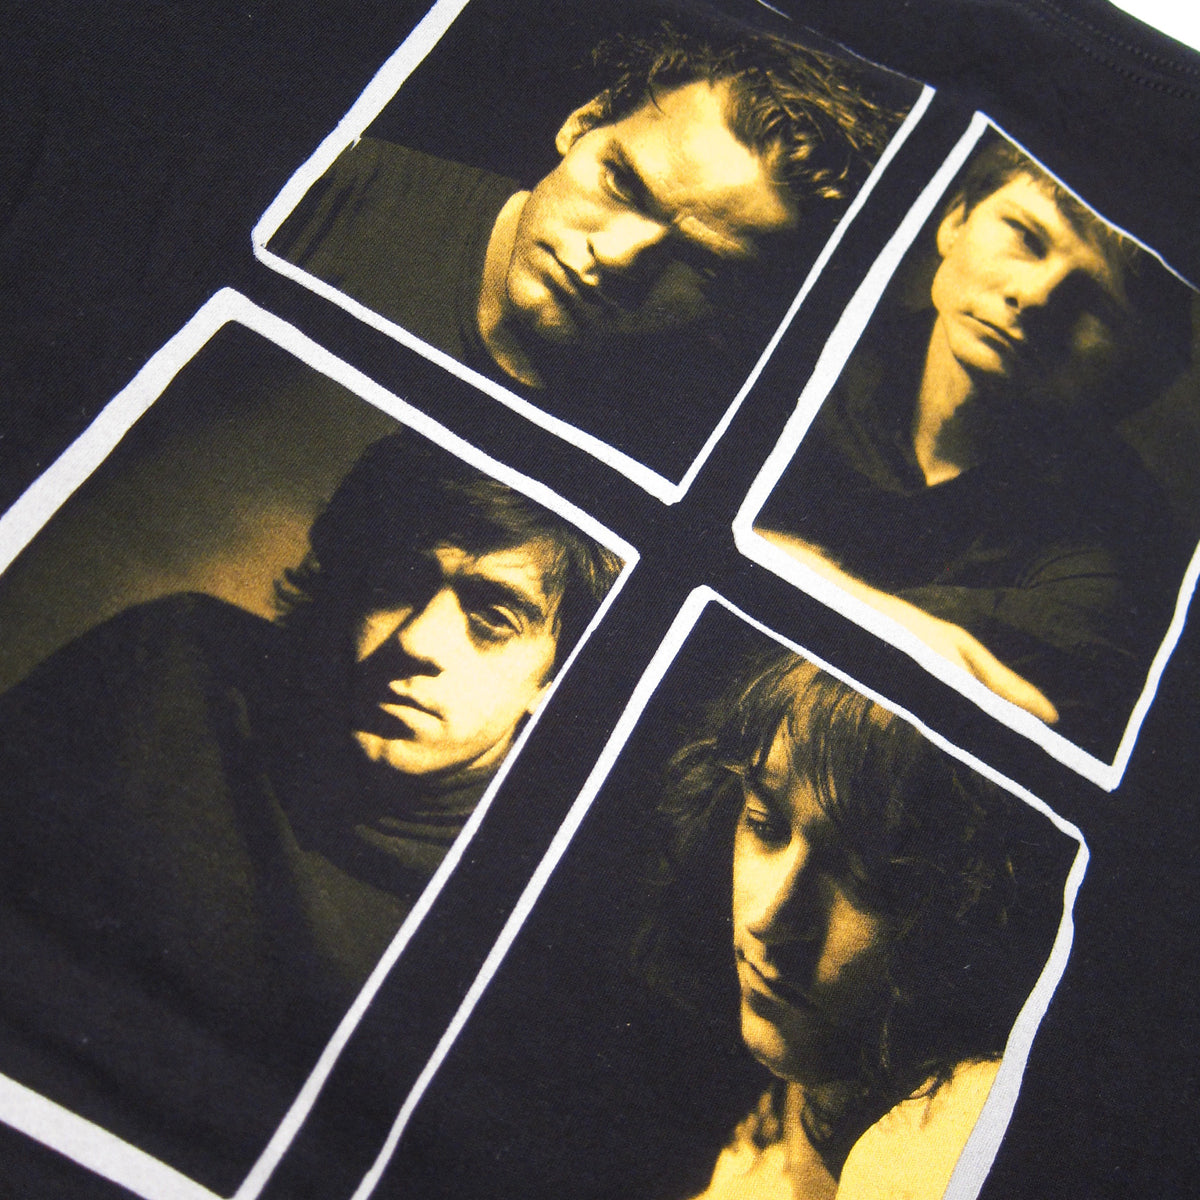 R.E.M.: Athens Postcard Shirt - Black (Size Small Only)